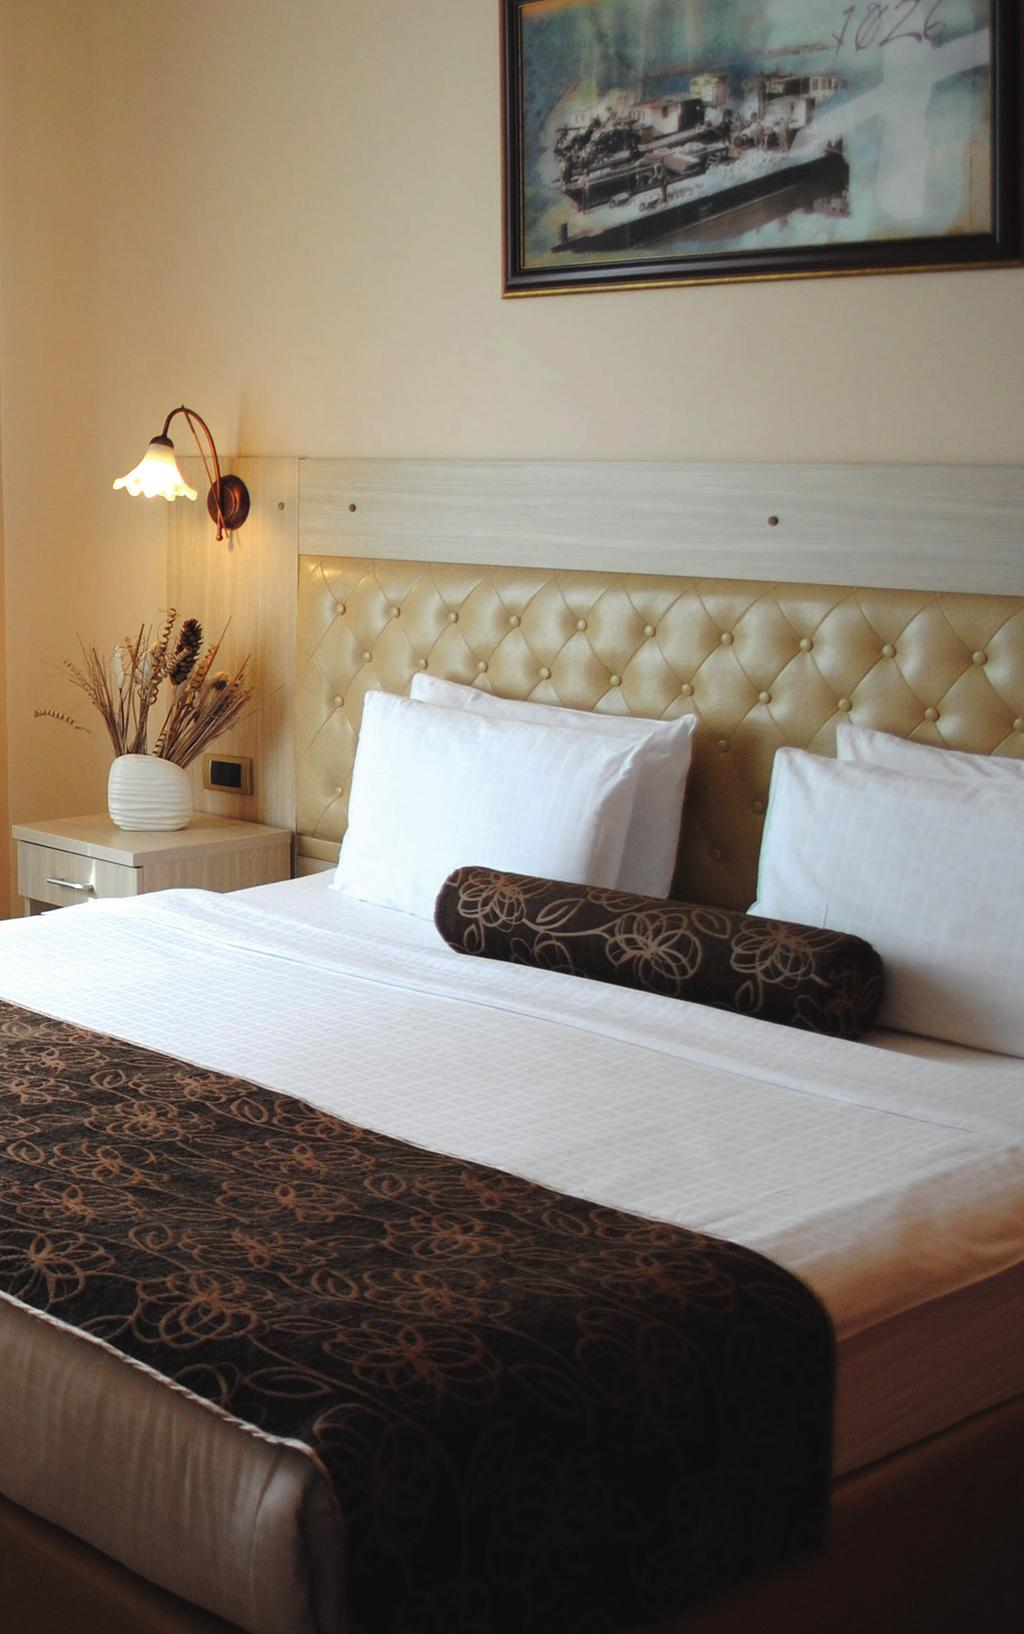 with 4 star rooms, providing a range of treatments to help you feel comfortable.